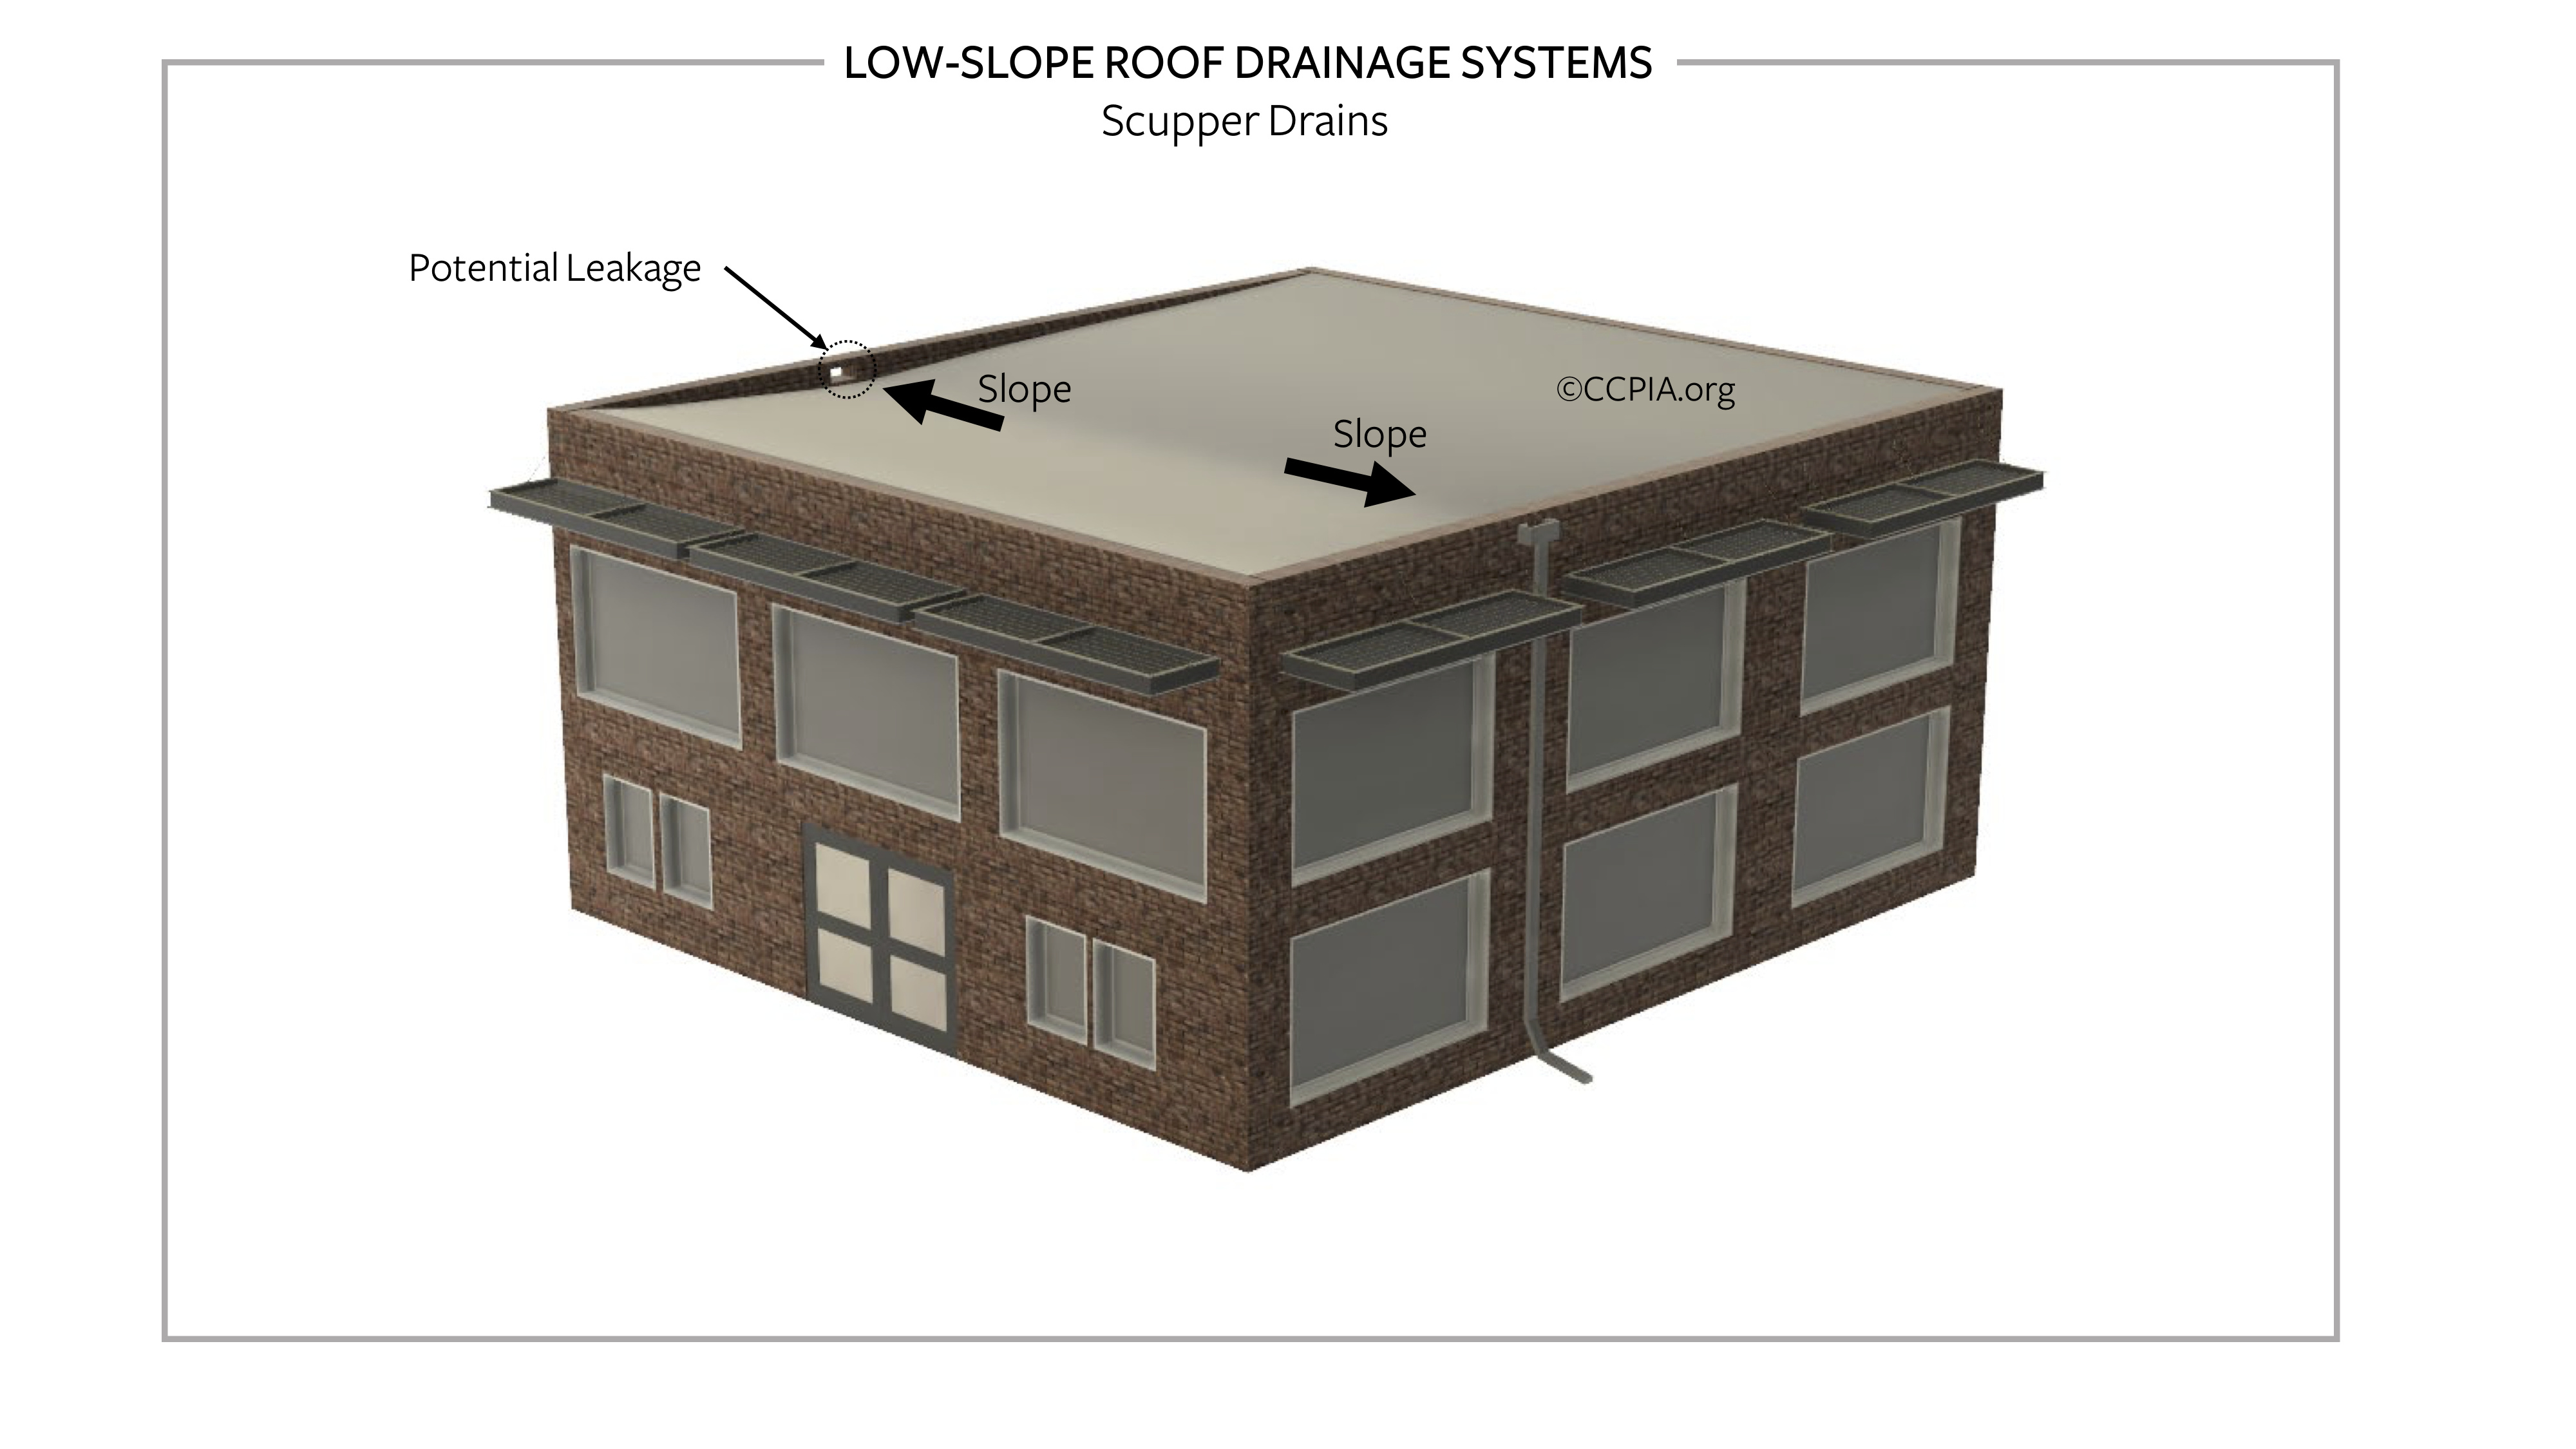 Low-slope roof drainage, scupper drains.